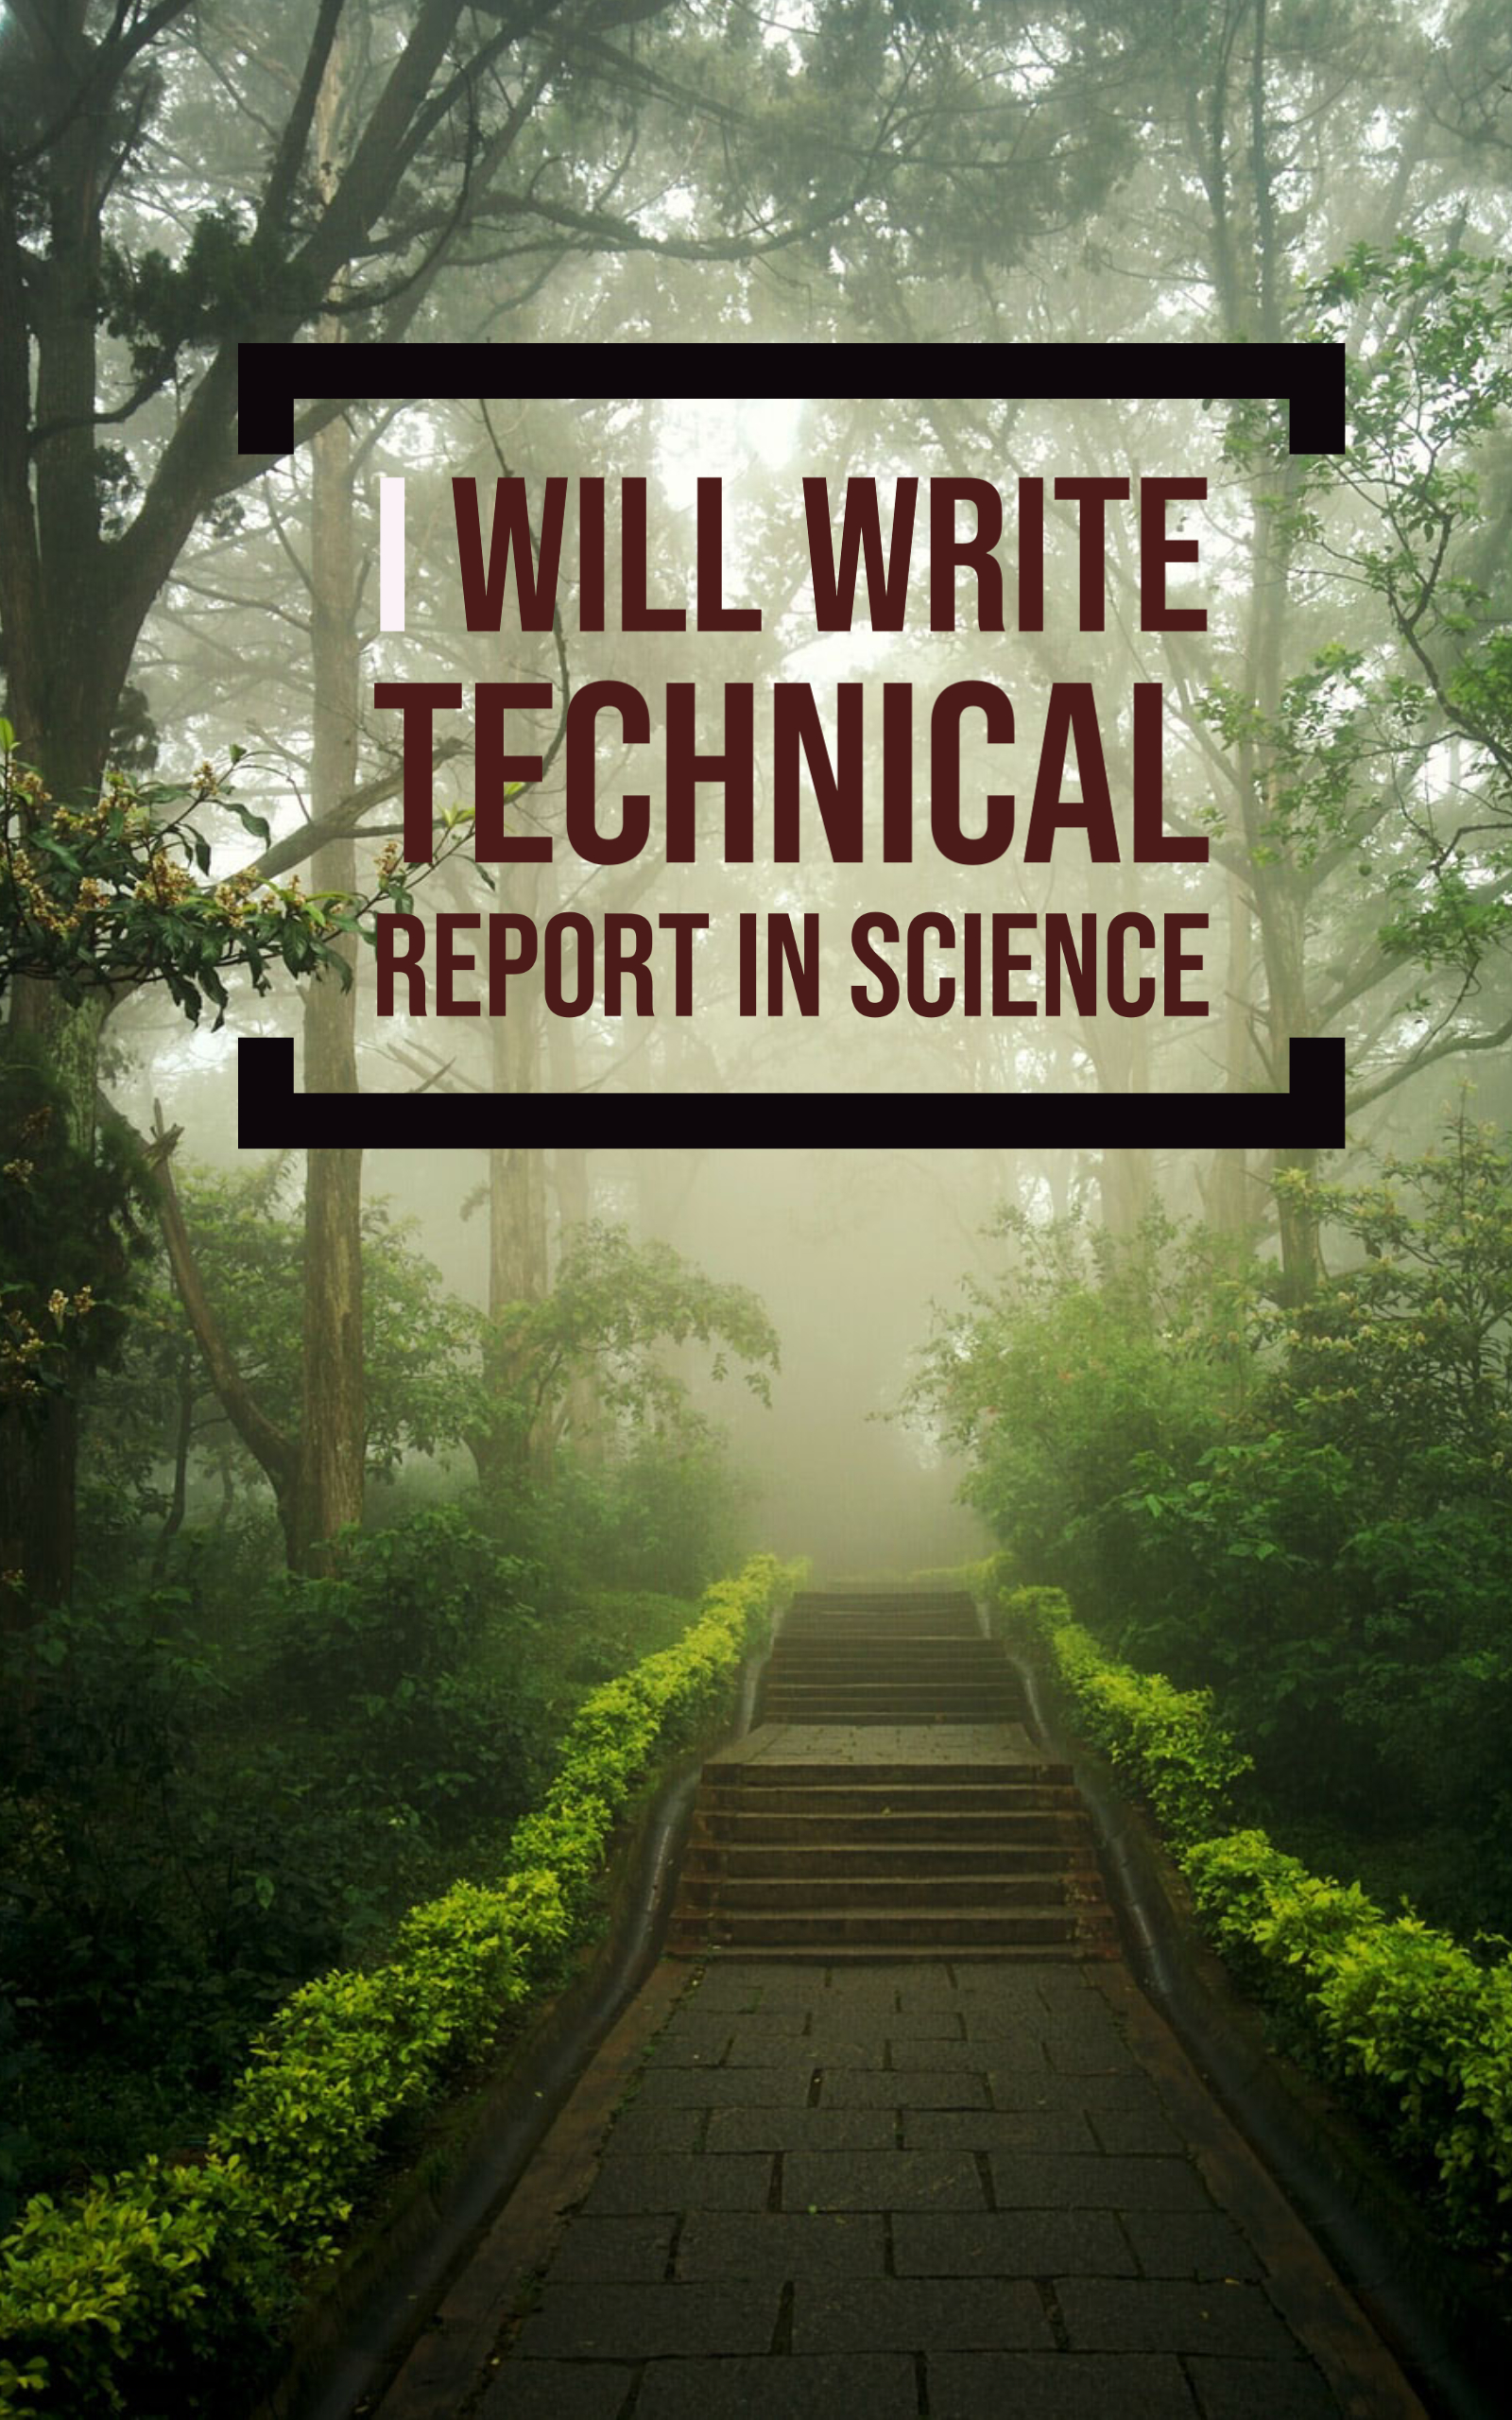 I will write research article with proofreading and will add references and citations in any style.